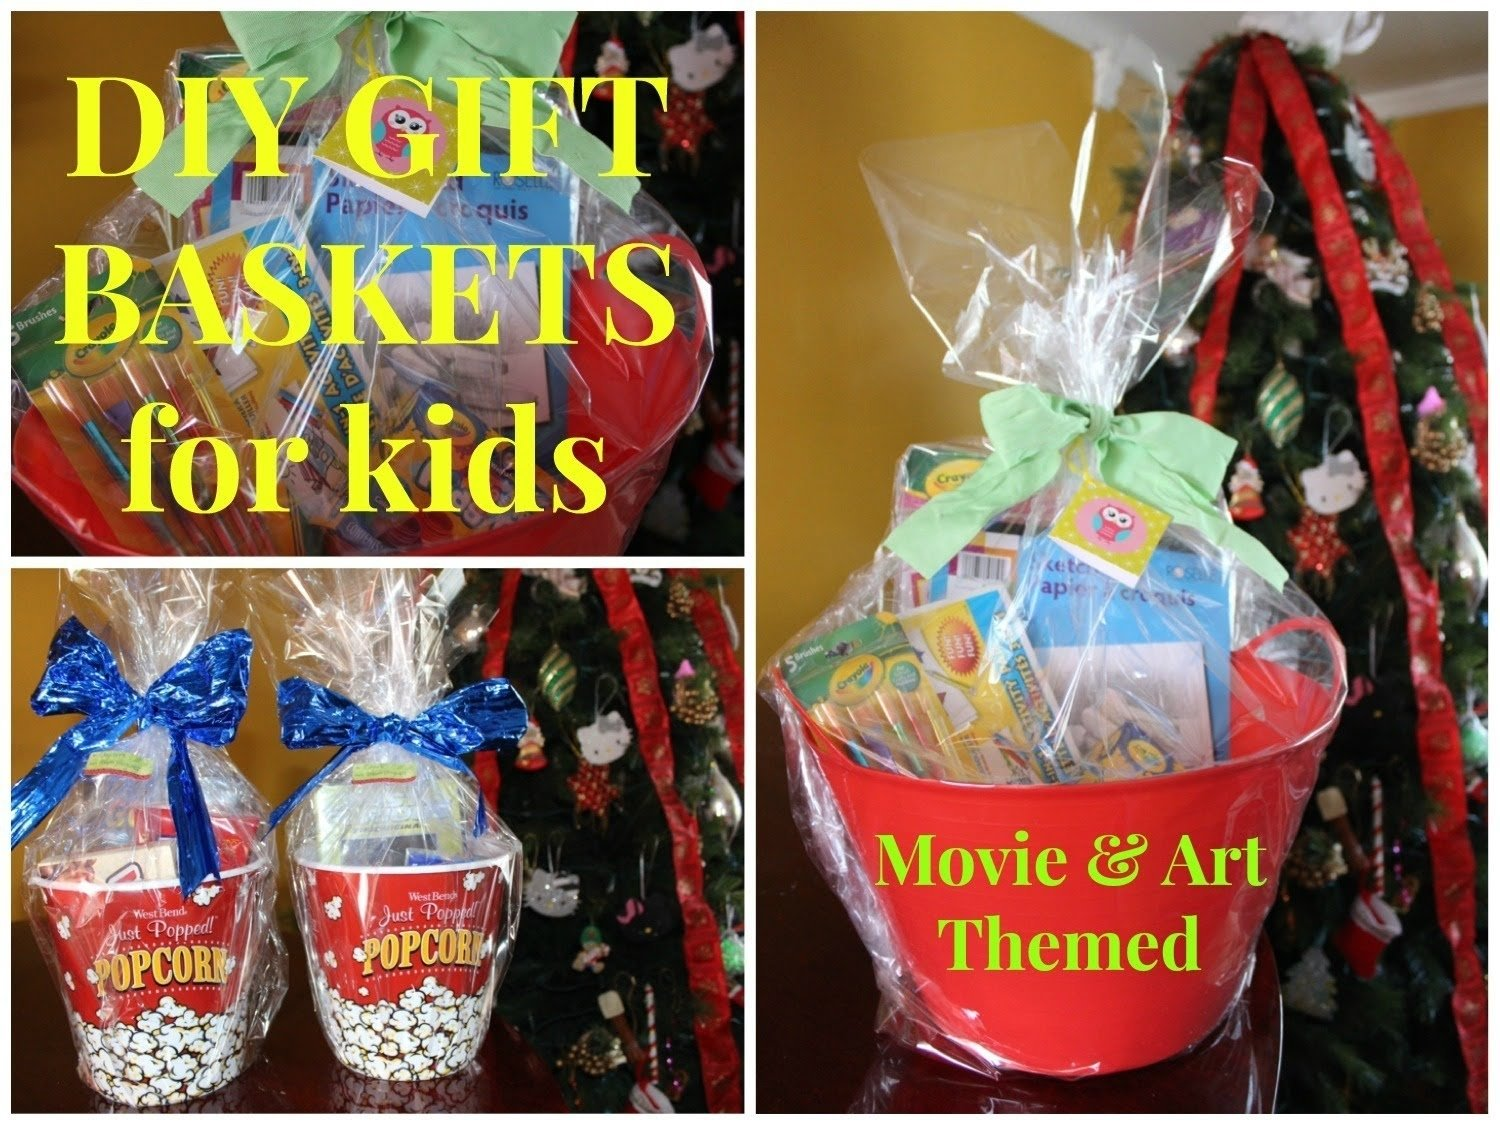 diy movie & art themed gift baskets for kids - budget friendly - youtube